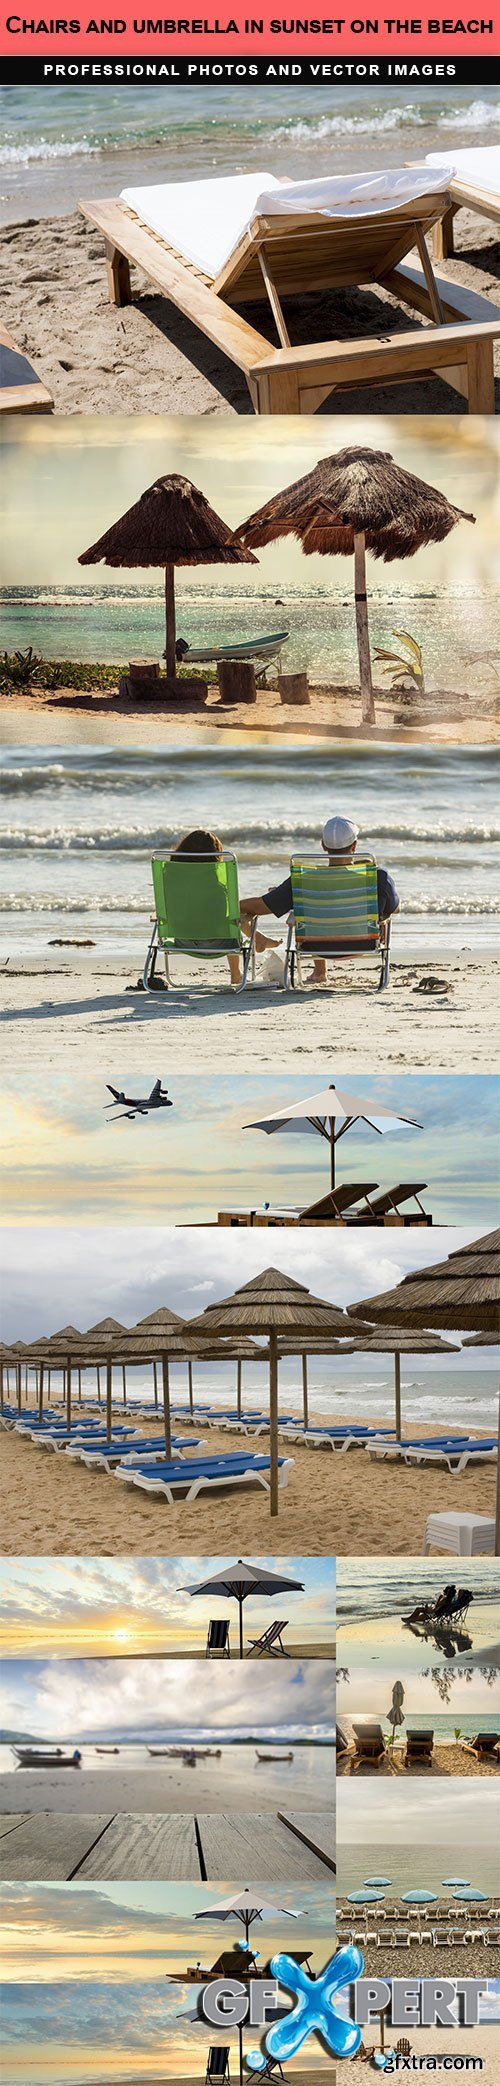 Chairs and umbrella in sunset on the beach